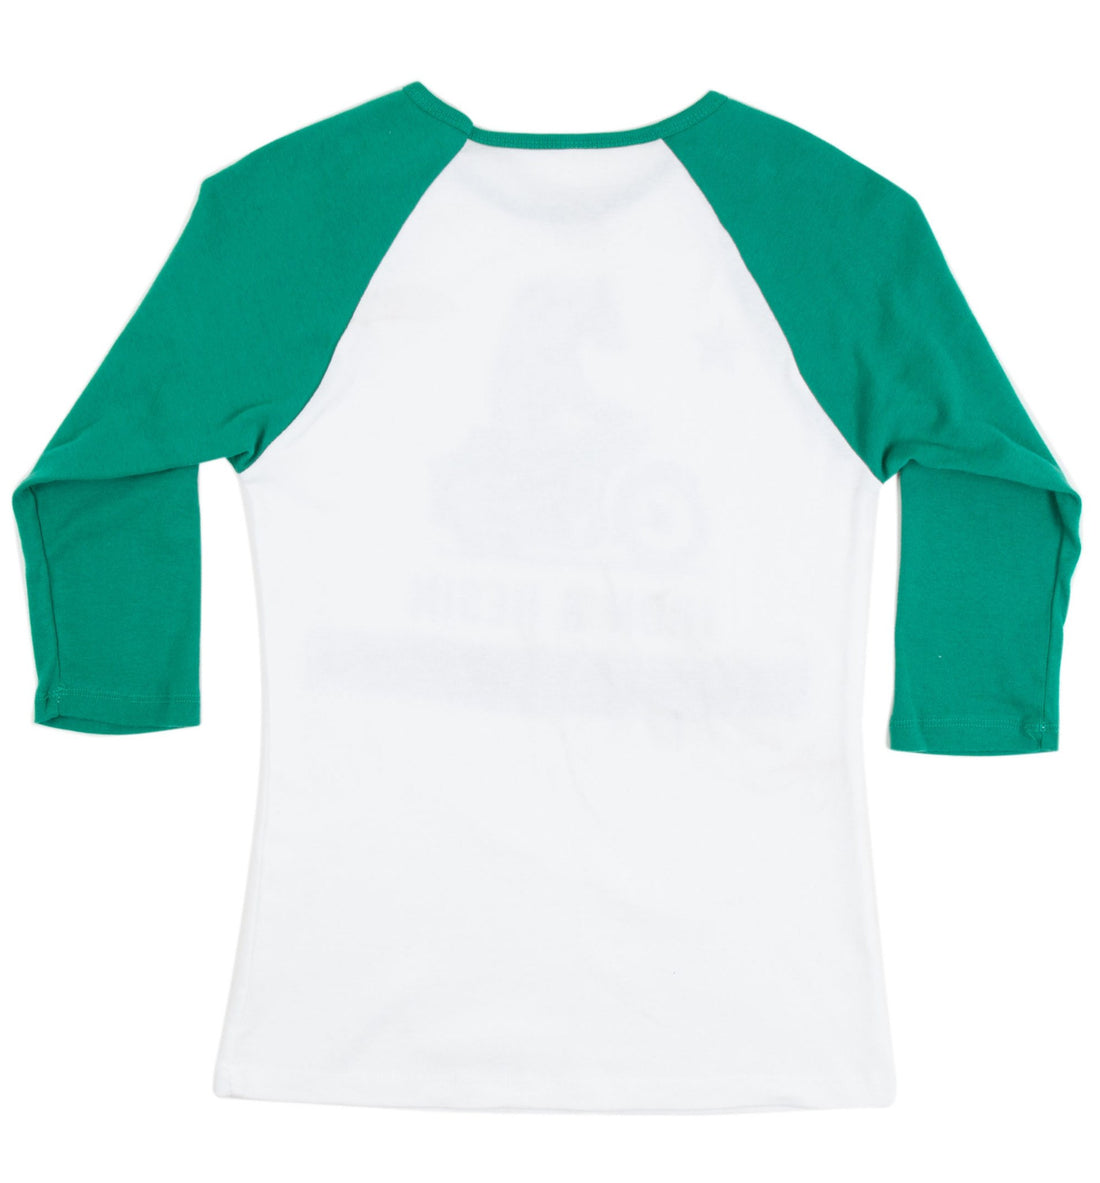 INR Moto Bear Women's Baseball Tee - Apparel: Women's: T-Shirts - Iron and Resin